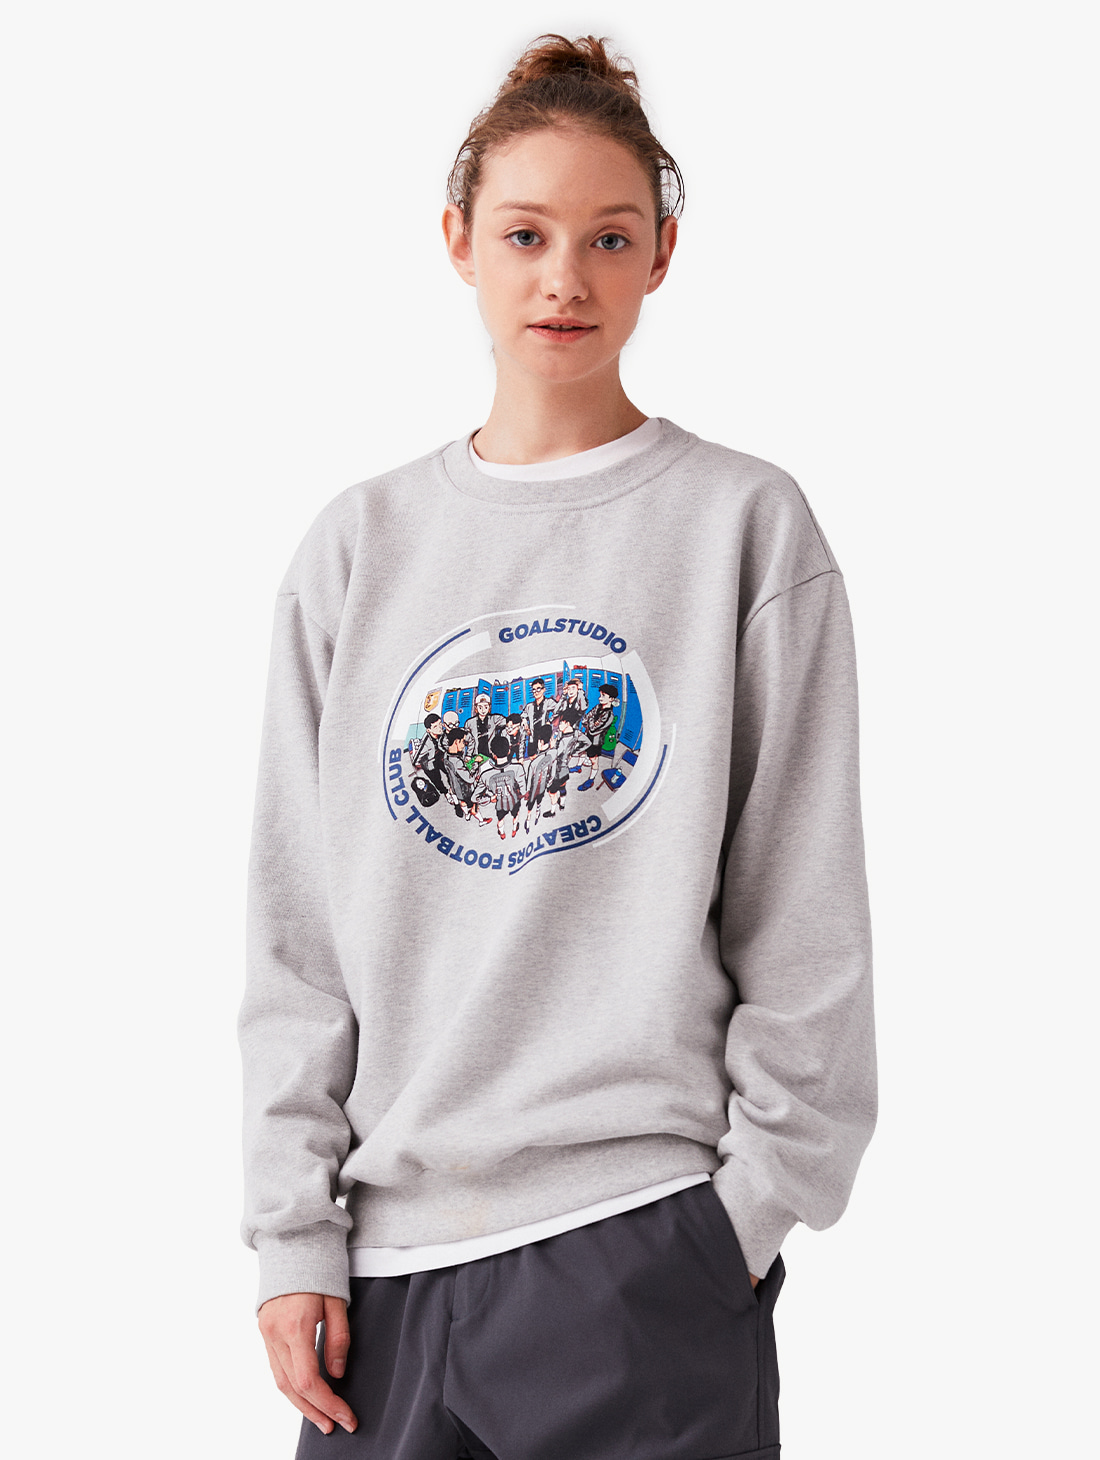 CFC TEAM GRAPHIC SWEATSHIRT (2 Colors)